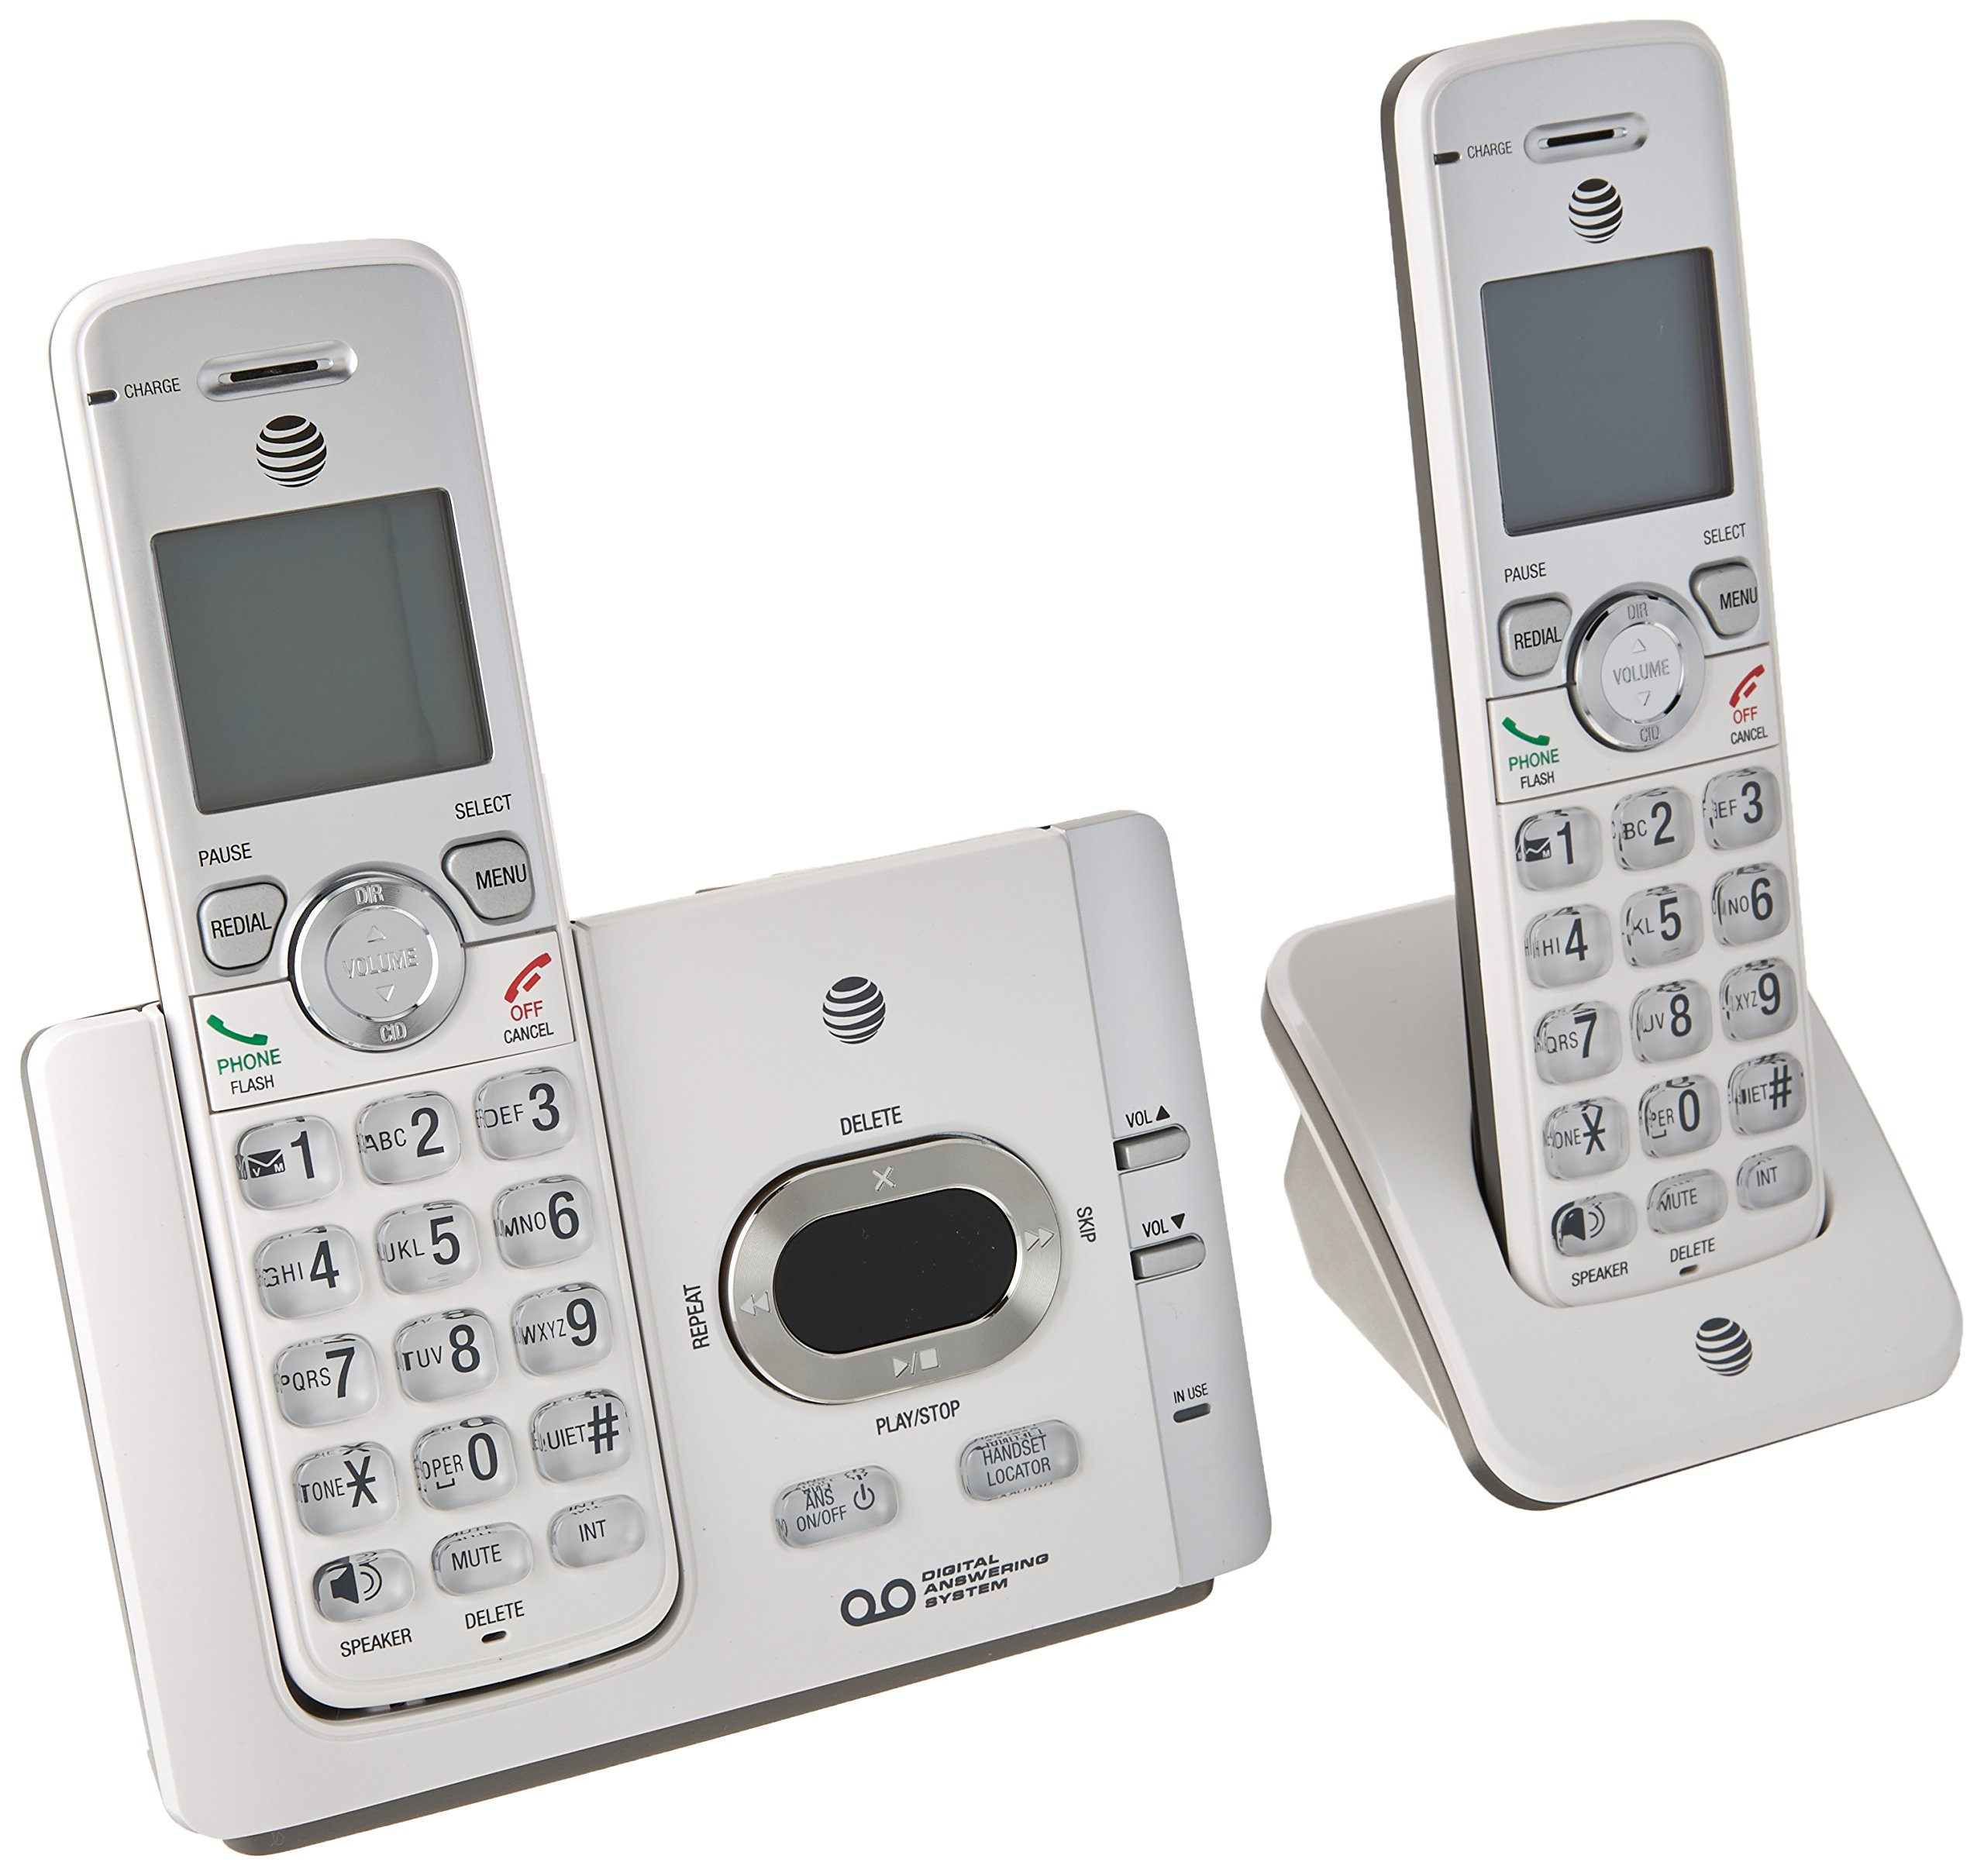 AT&T EL52215 Dect 6.0 Answering System with Caller ID/Call Waiting Landline Telephone Accessory by AT&T